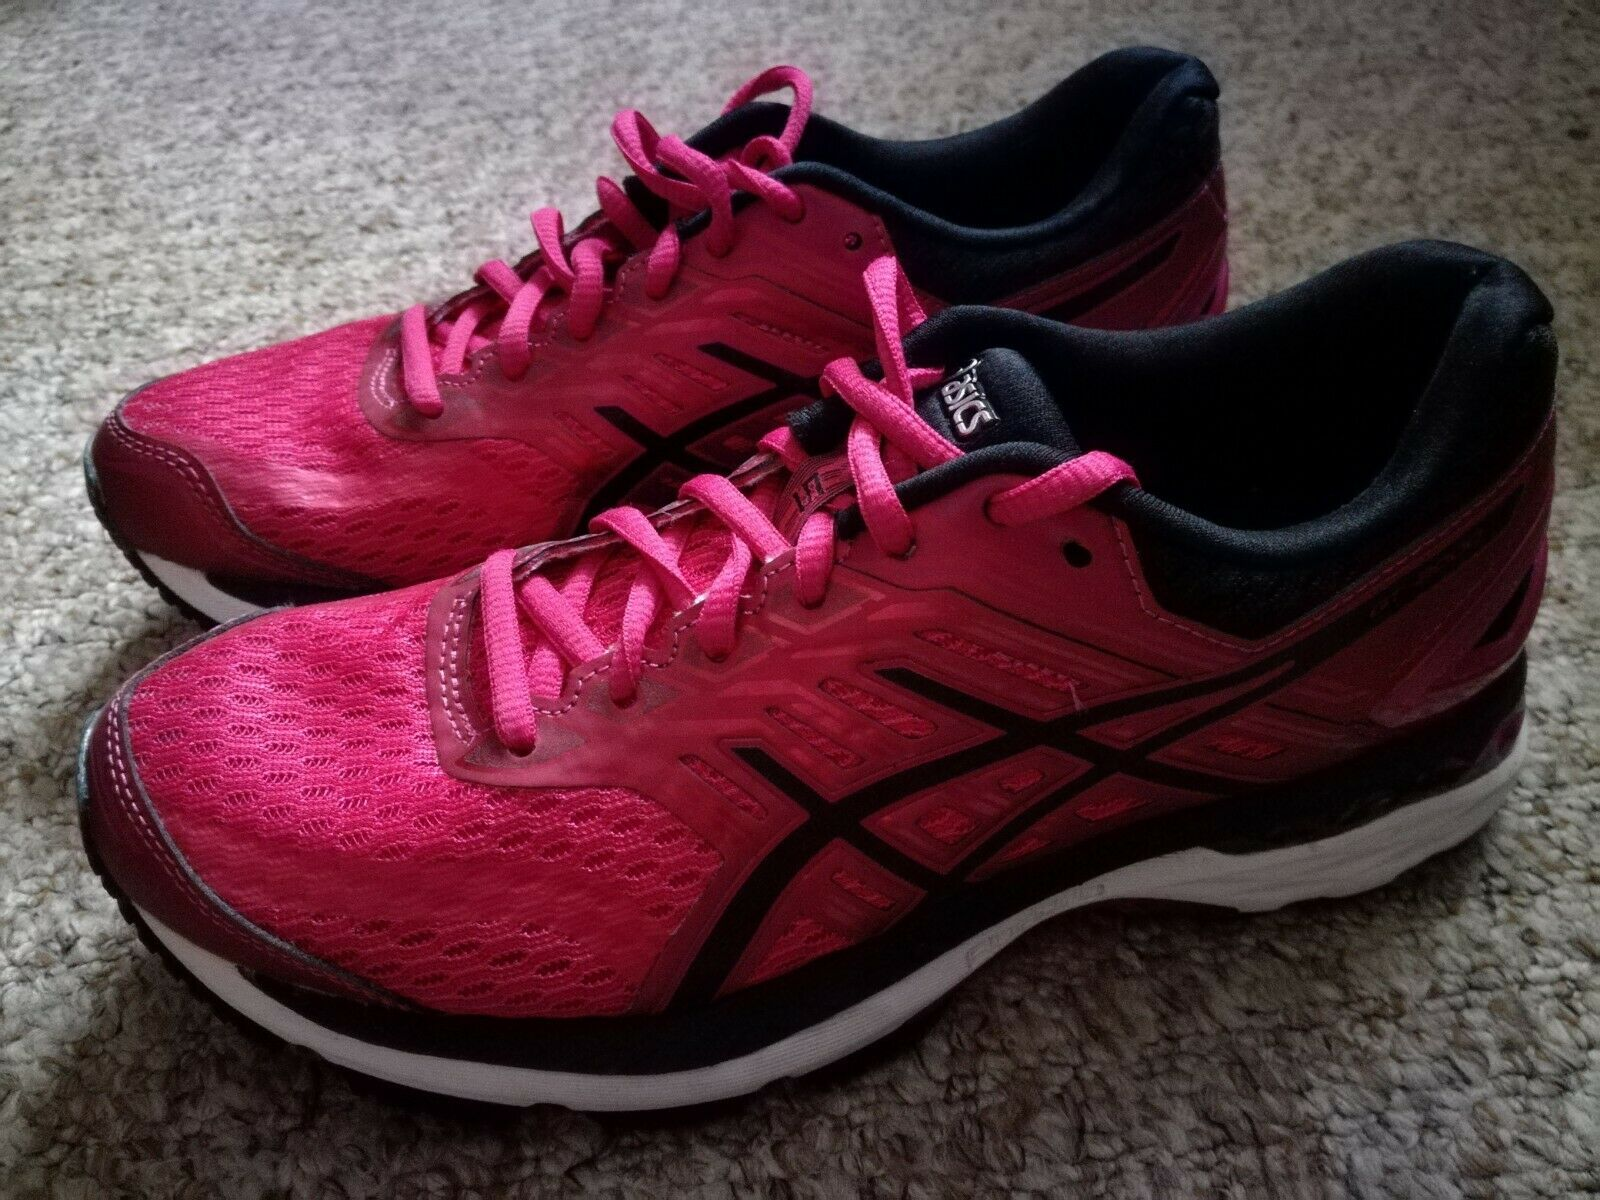 ASICS  GT 2000 Size 5 - only worn a few times  large selection